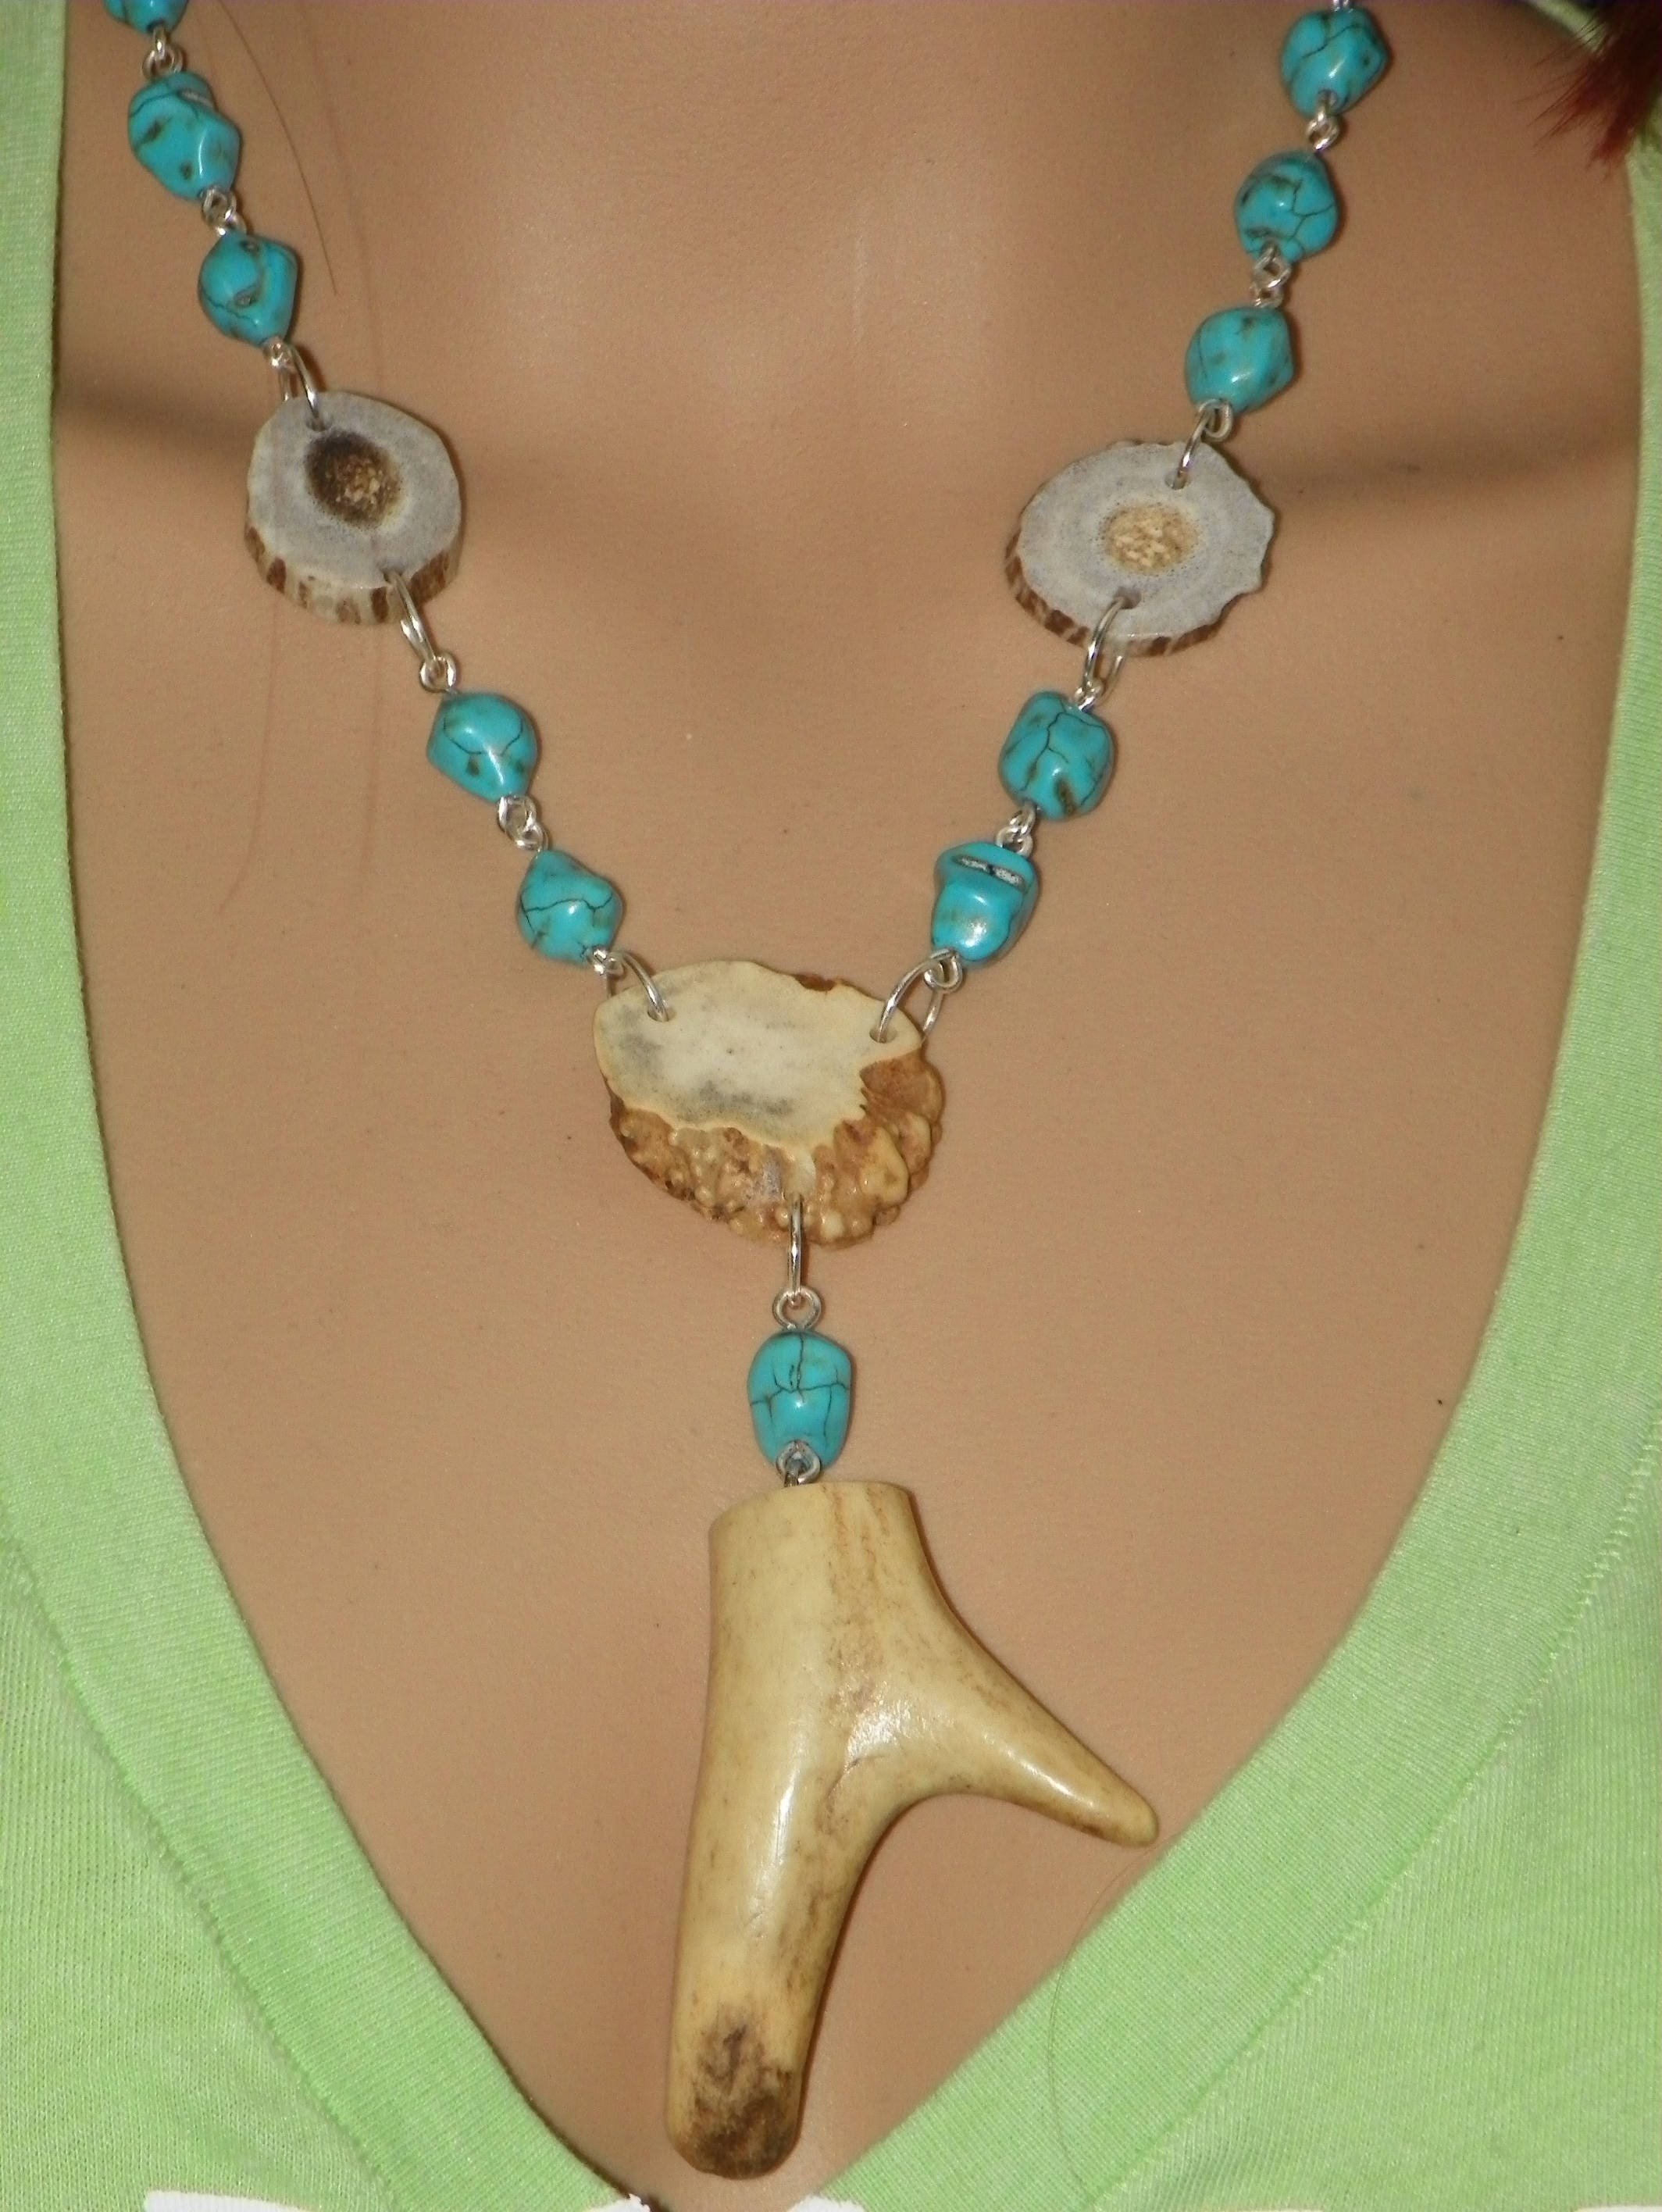 by designs tine horn necklace pin deer antler jewelry mindi